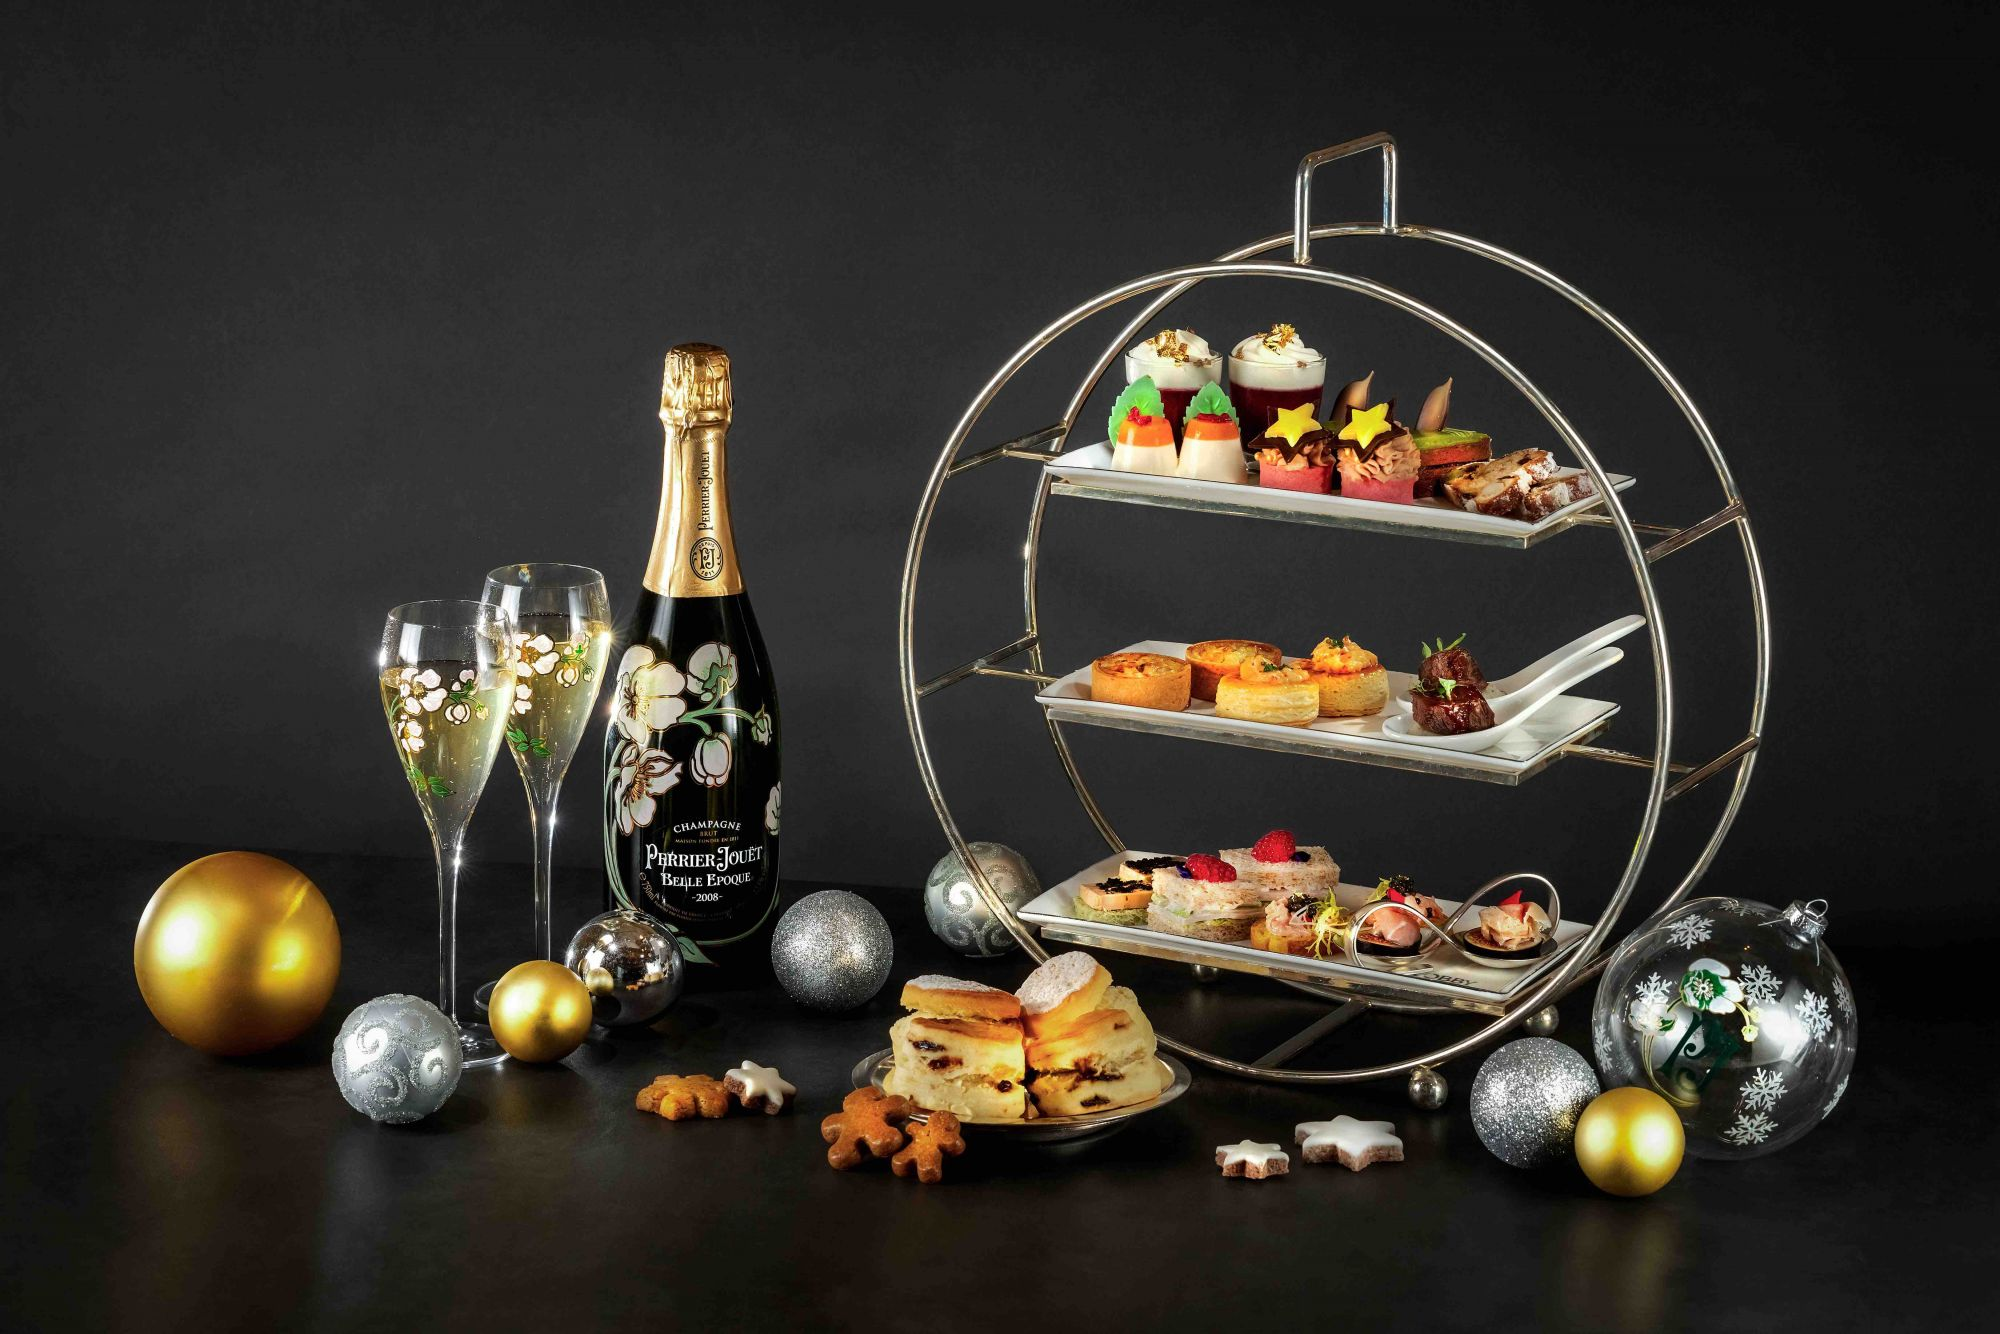 5 Afternoon Tea Sets To Try This Festive Season